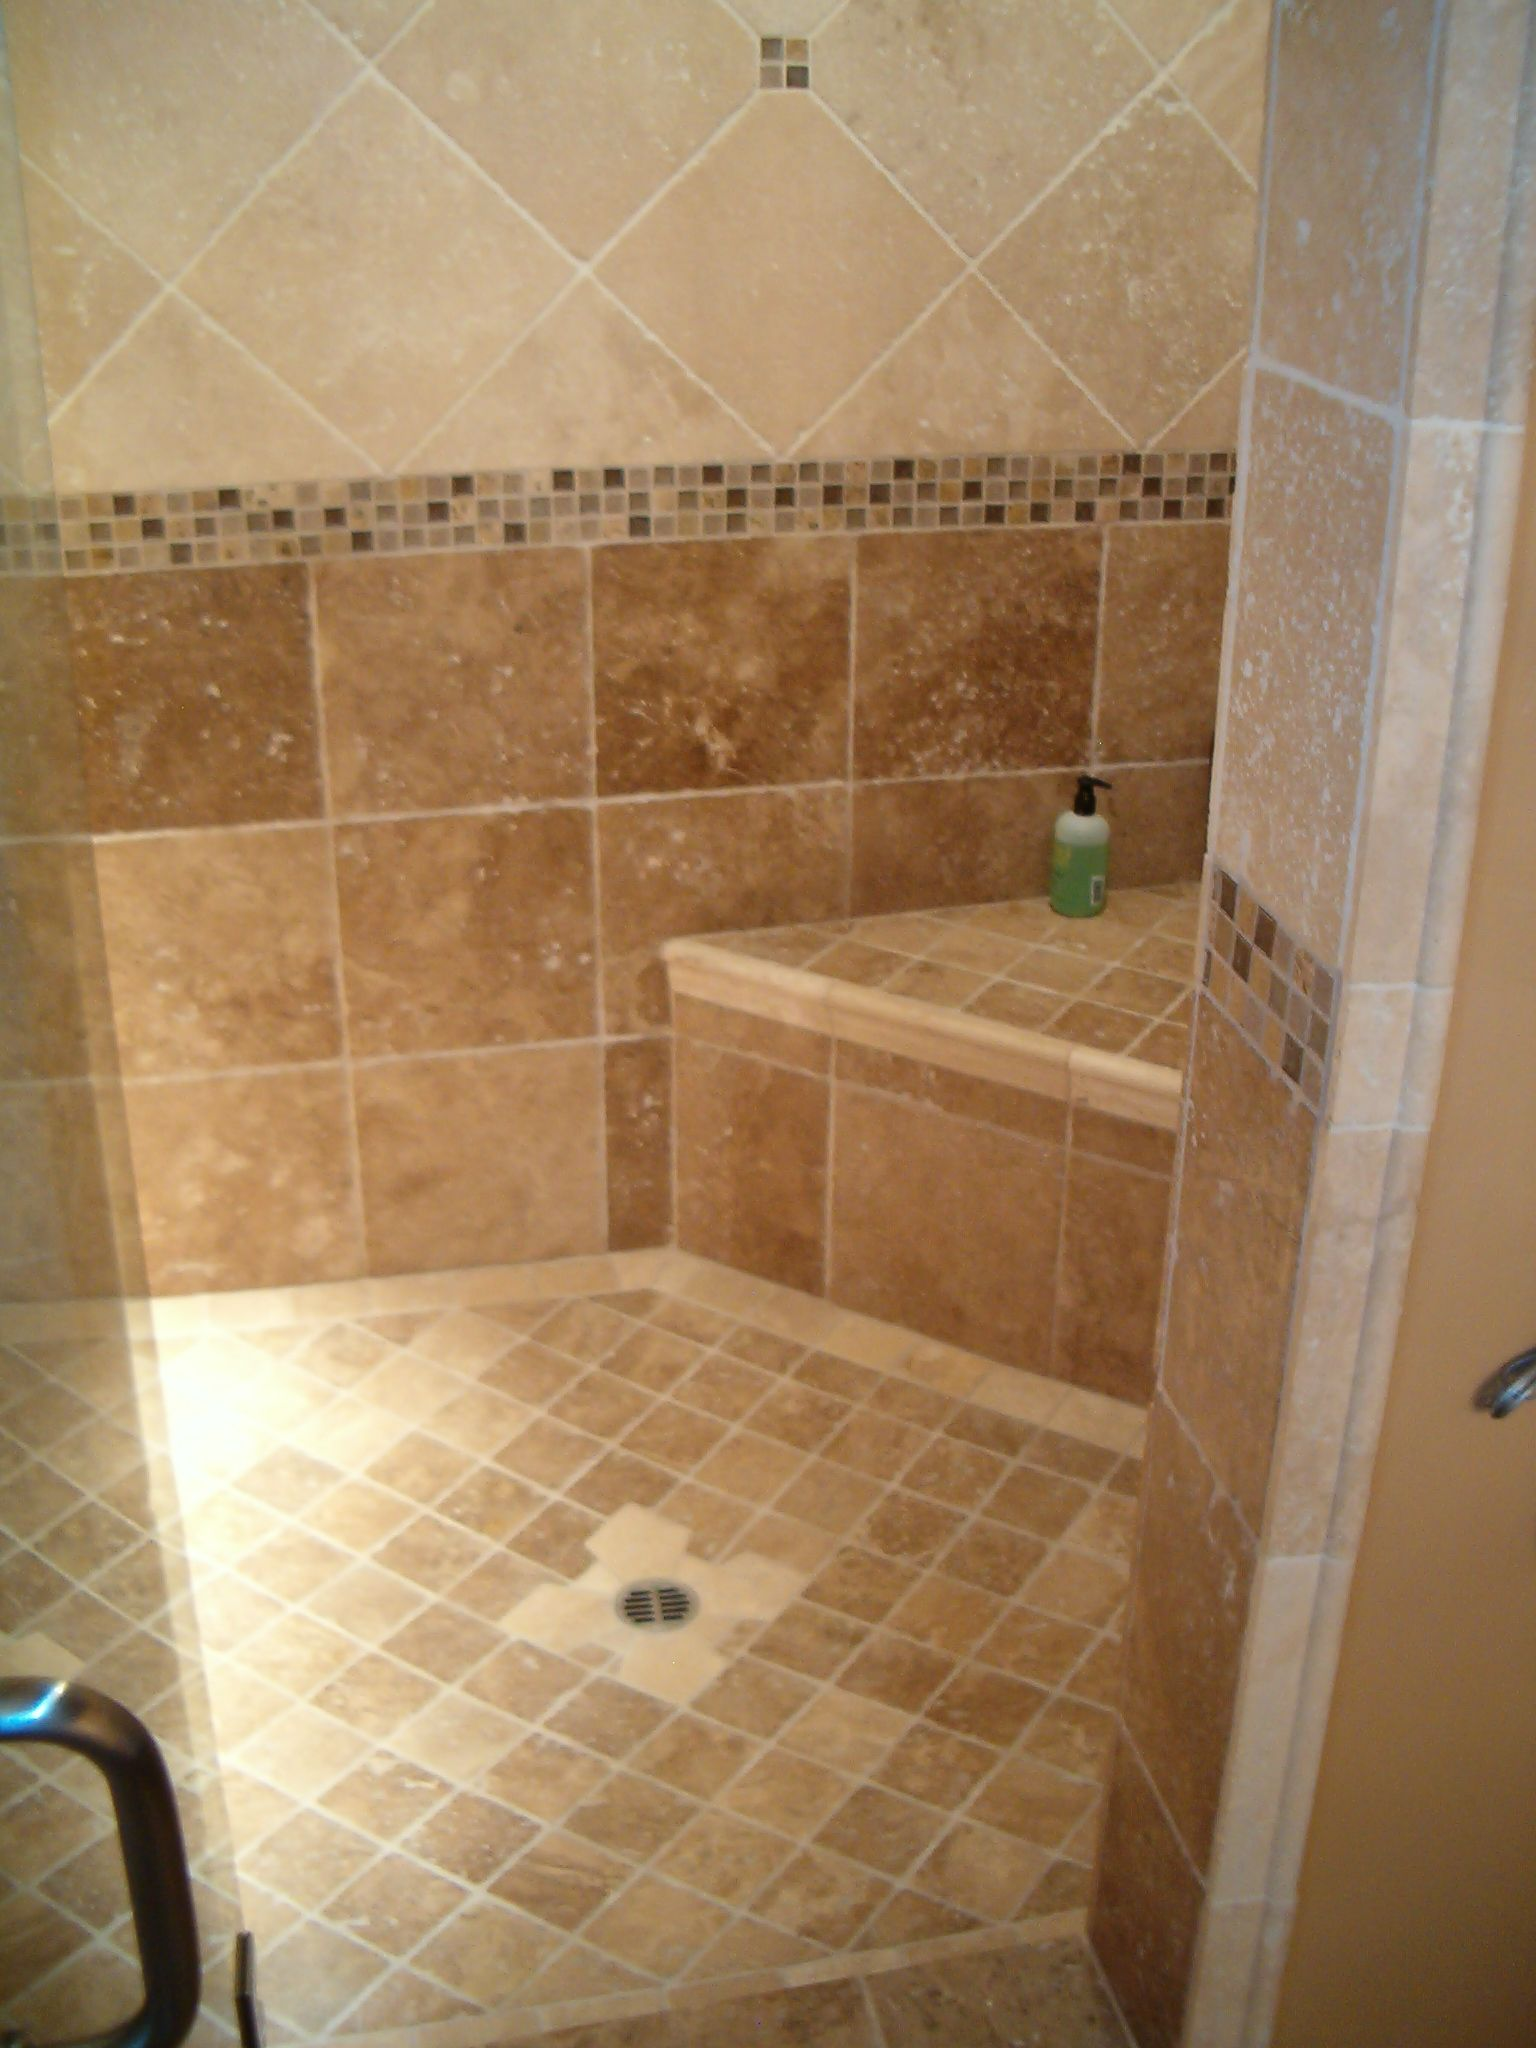 1000 images about bathroom tile on pinterest shower tiles shower designs and tile bathrooms